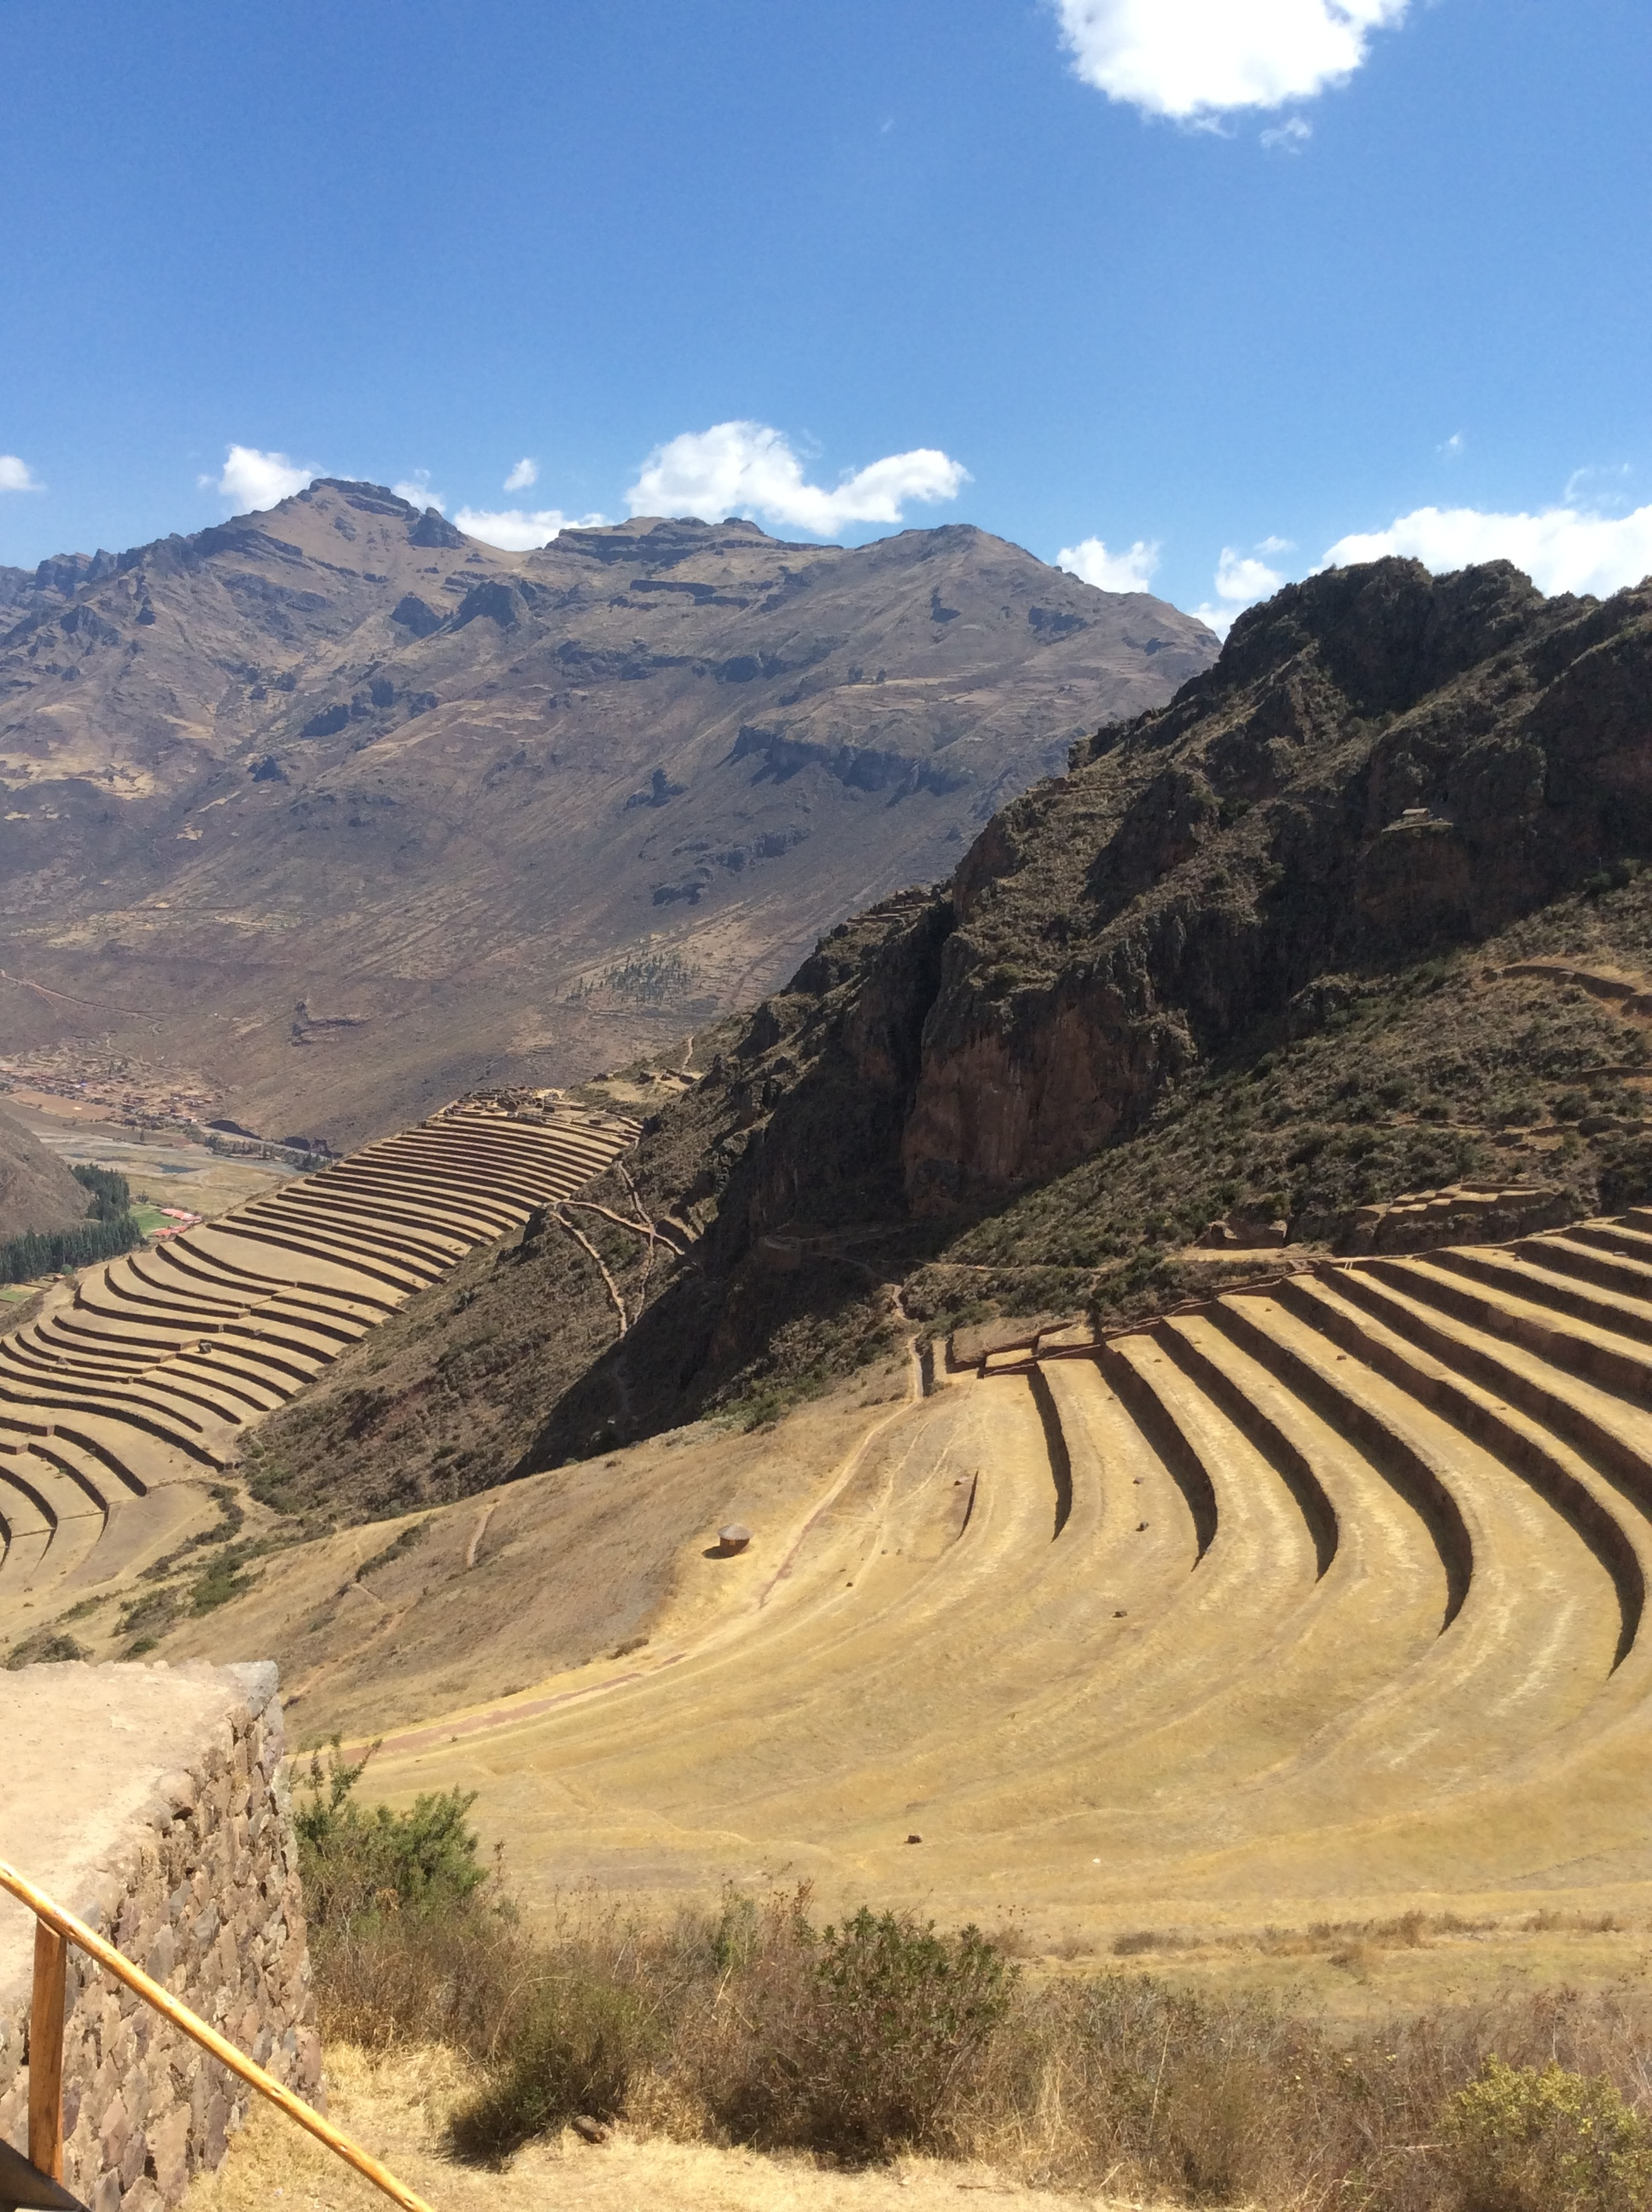 Pisac - (Pictured: The Terraces)   Pisac is perhaps best known for its Incan ruins, known as Inca Písac, which lie atop a hill at the entrance to the valley. The ruins are separated along the ridge into four groups:  P'isaqa ,  Inti Watana ,  Qalla Q'asa , and  Kinchiraqay .  Inti Watana  group includes the Temple of the Sun, baths, altars, water fountains,and a ceremonial platform.  Qalla Q'asa , which is built onto a natural spur and overlooks the valley, is known as the citadel.  The Inca constructed agricultural terraces on the steep hillside, which are still in use today. They created the terraces by hauling richer topsoil by hand from the lower lands. The terraces enabled the production of surplus food, more than would normally be possible at altitudes as high as 11,000 feet.  With military, religious, and agricultural structures, the site served at least a triple purpose. Researchers believe that Písac defended the southern entrance to the Sacred Valley, while Choquequirao defended the western entrance, and the fortress at Ollantaytambo the northern. Inca Pisac controlled a route which connected the Inca Empire with the border of the rain forest.  The sanctuary of  Huanca , site of a sacred shrine, is also near the village. Pilgrims travel to the shrine every September.